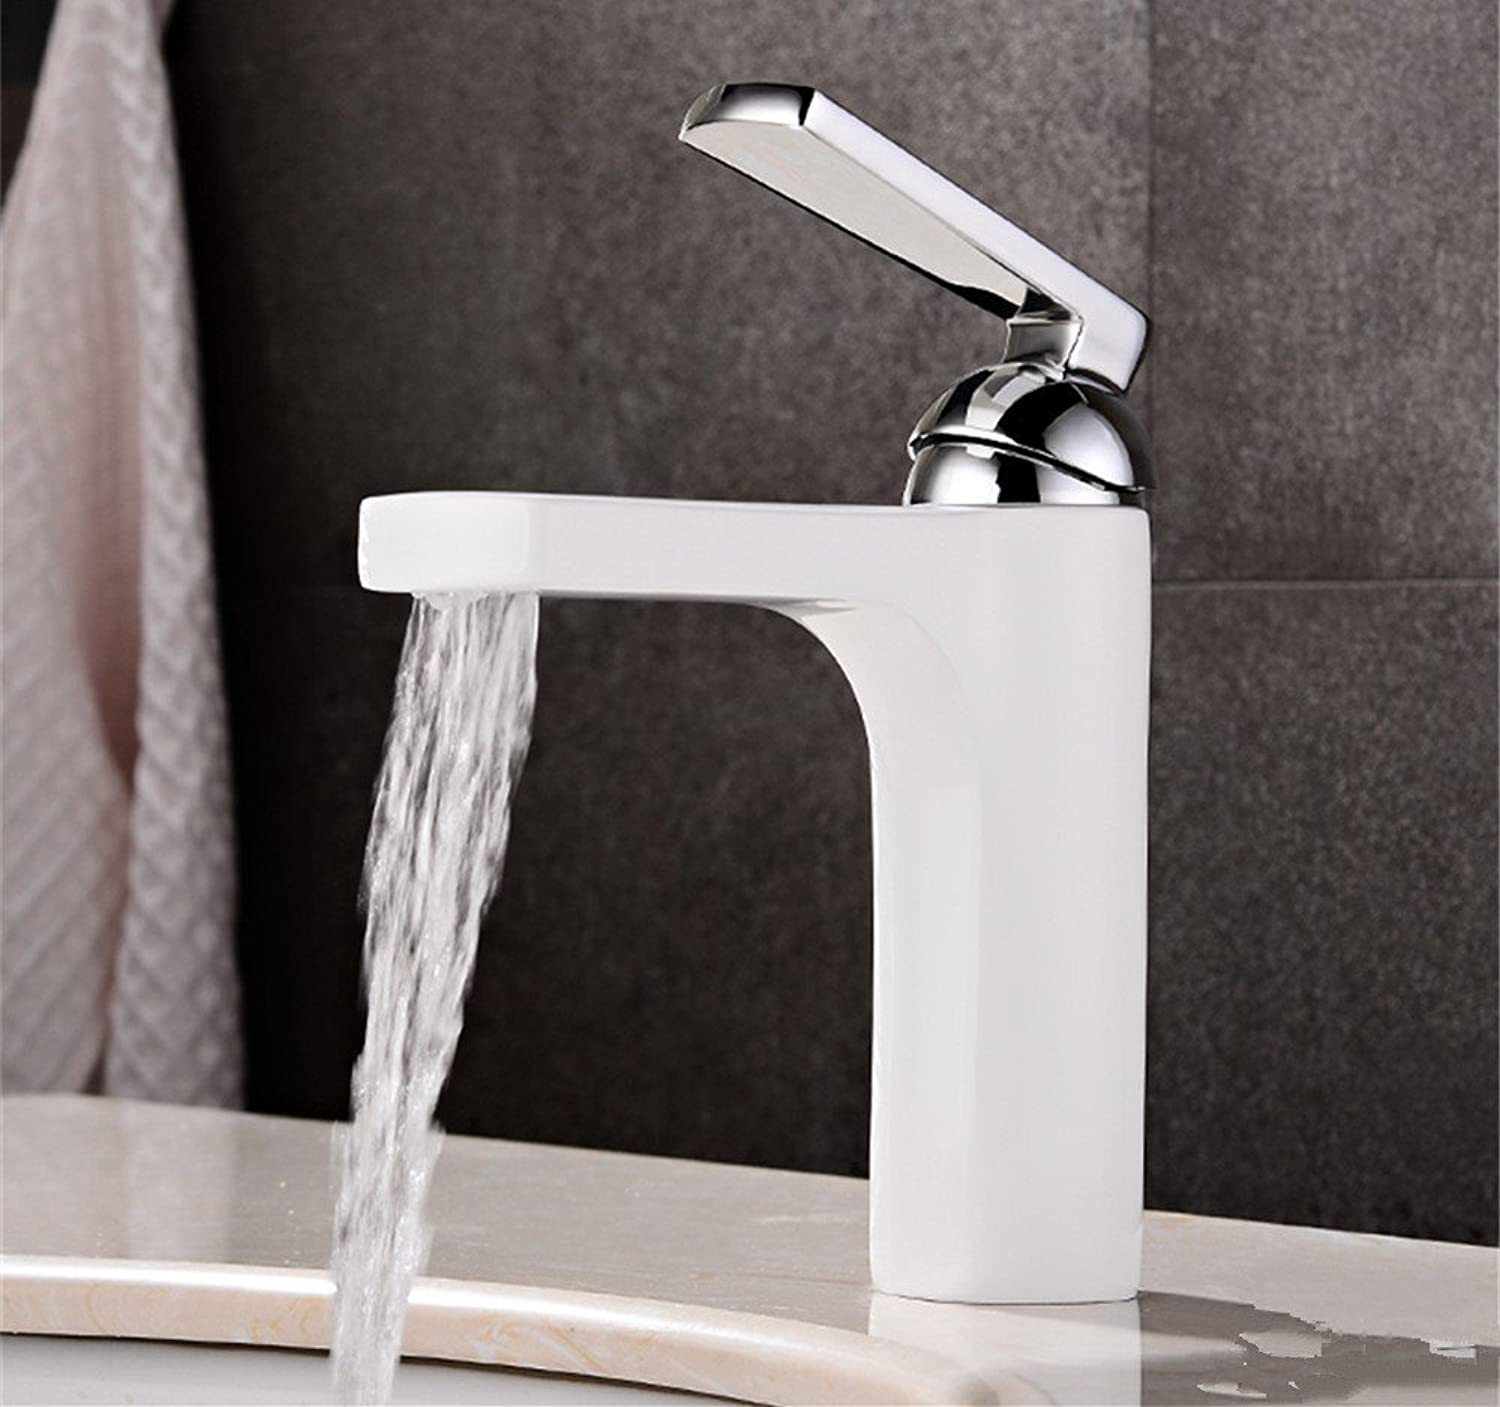 Lalaky Taps Faucet Kitchen Mixer Sink Waterfall Bathroom Mixer Basin Mixer Tap for Kitchen Bathroom and Washroom Copper Hot and Cold Waterfall White